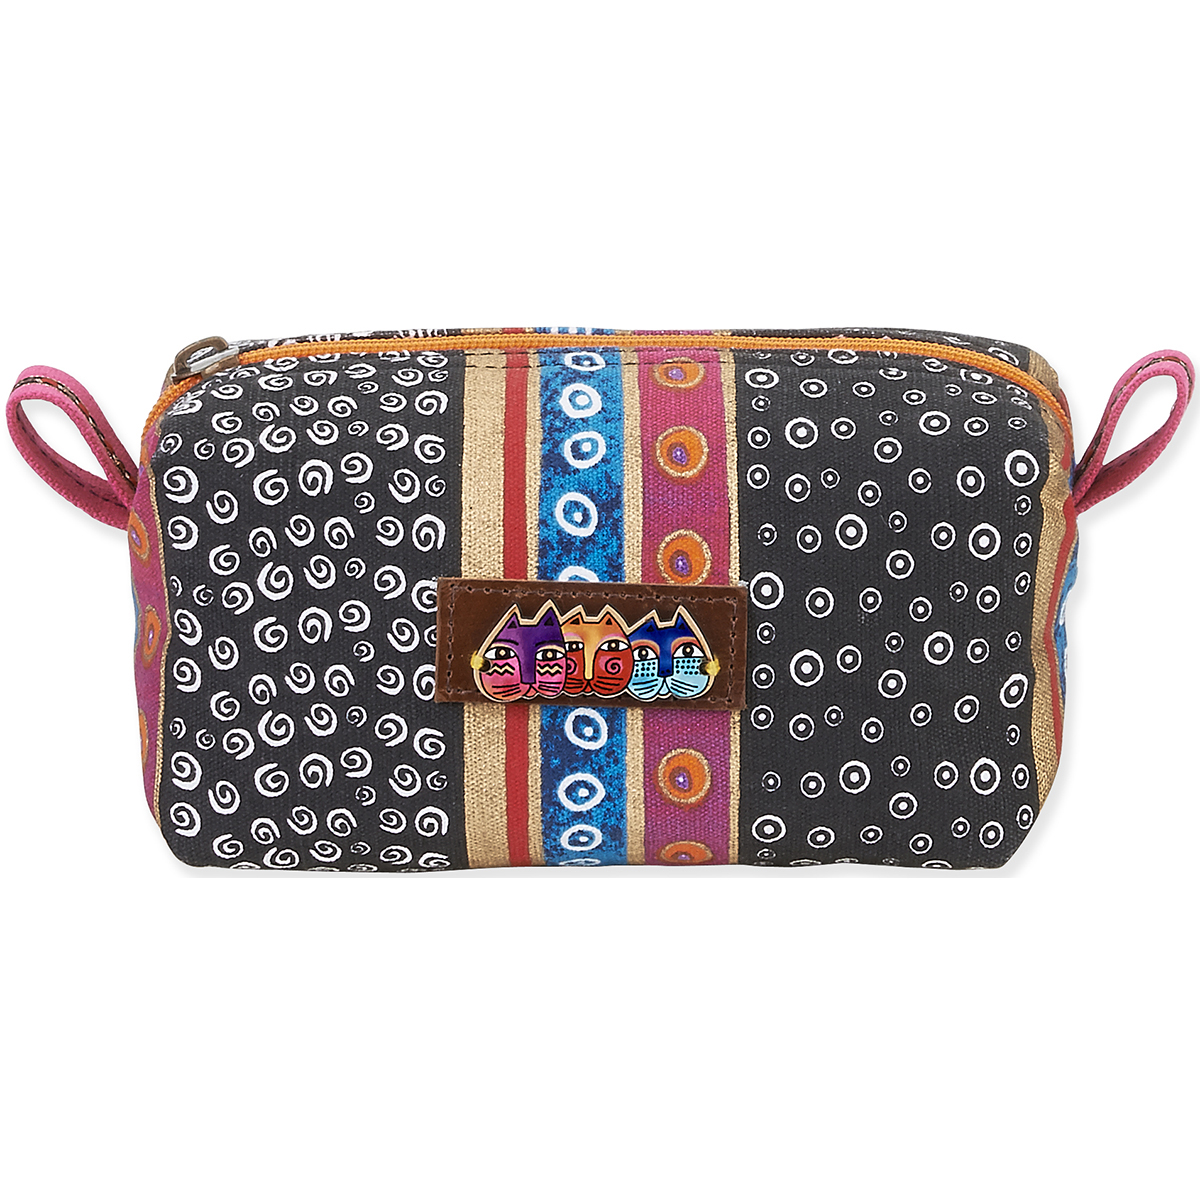 Cosmetic Pouch 7.5 Inch X 4 Inch X 4 Inch-Signature Collection